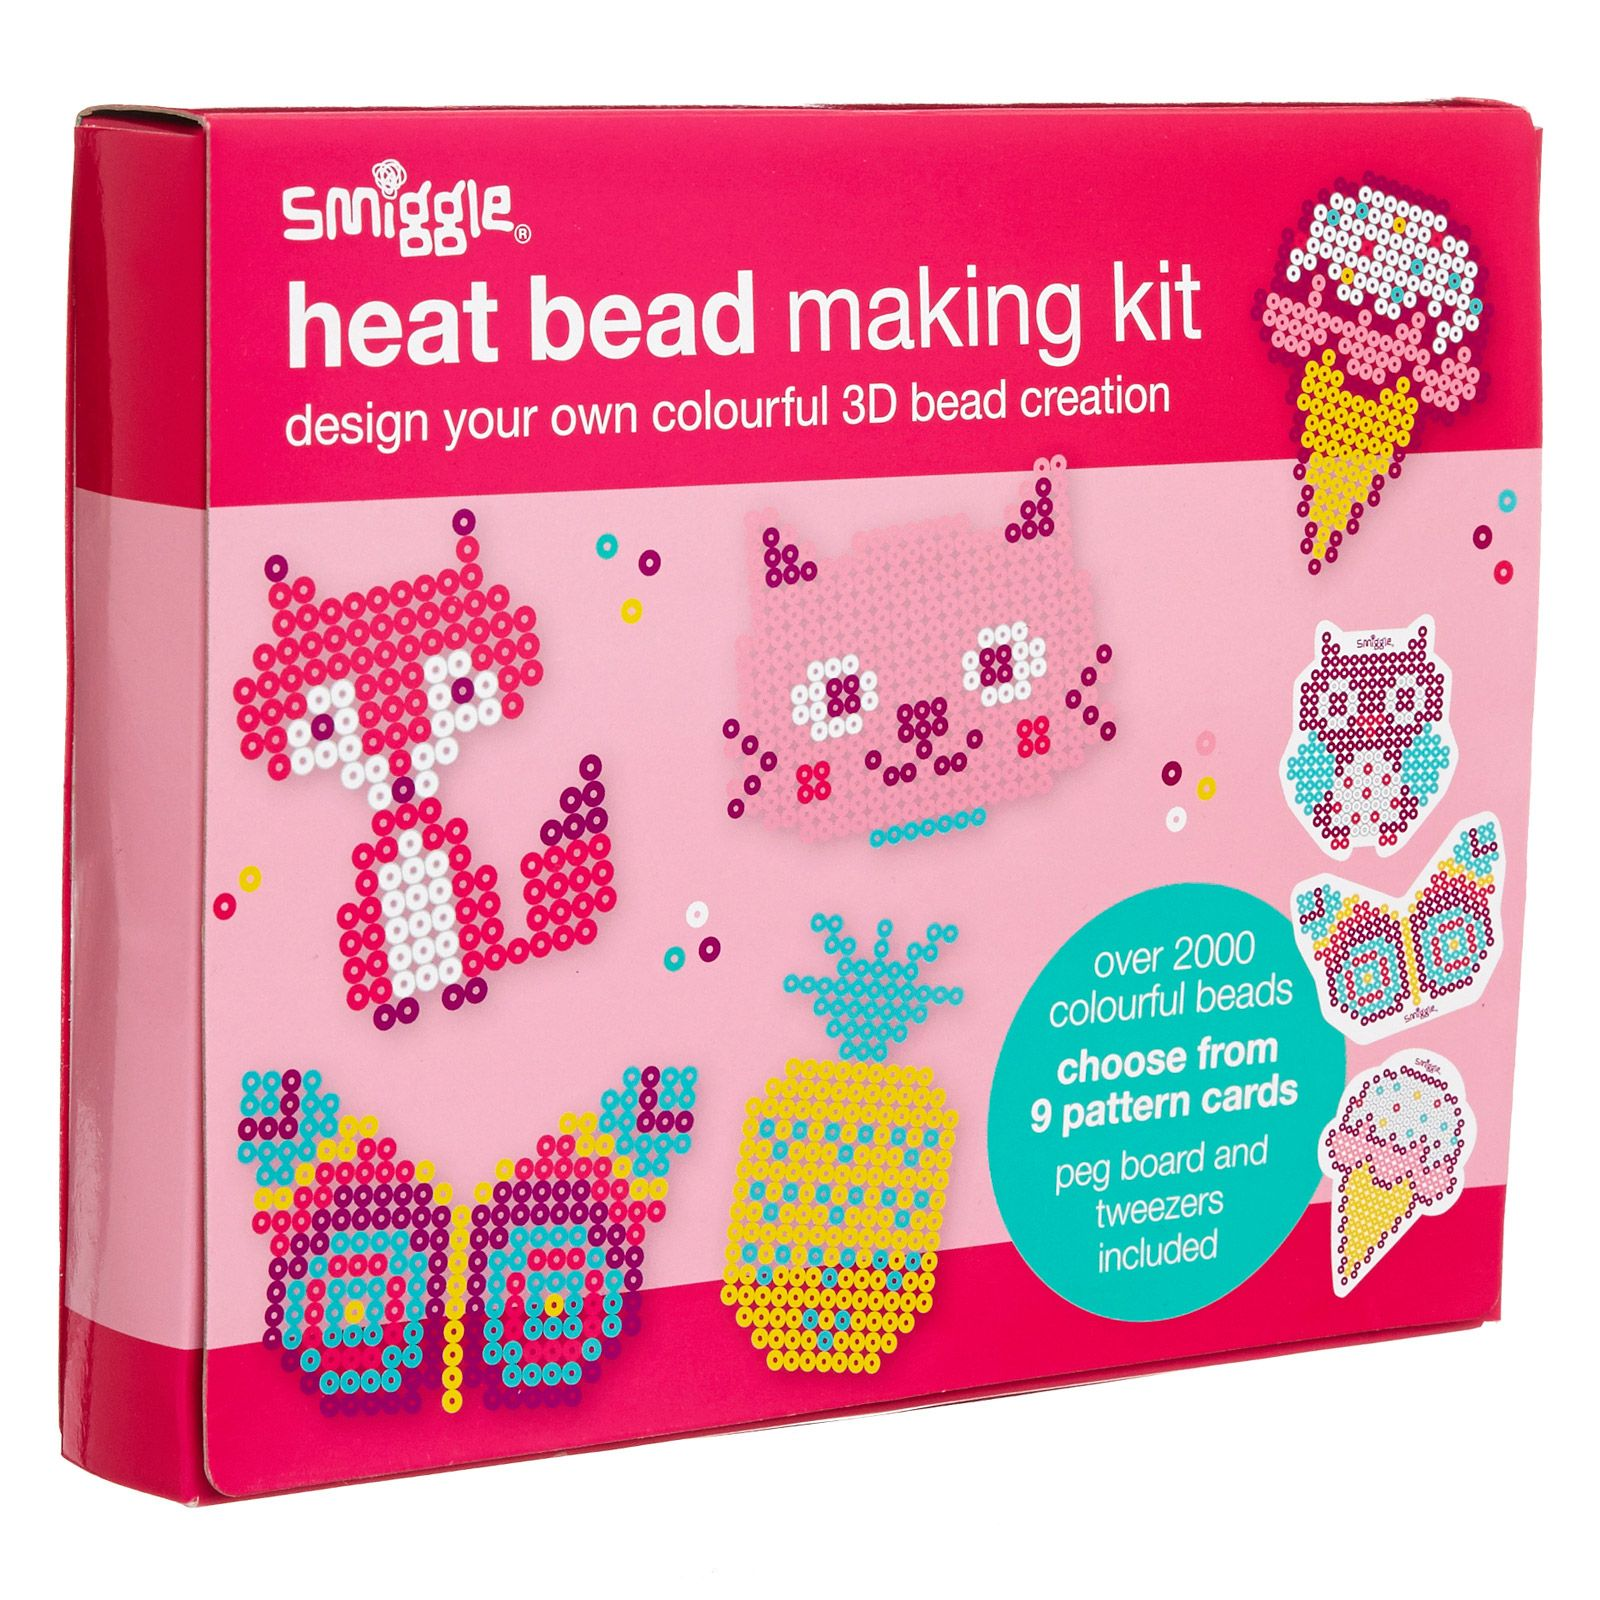 For Chloe Diy Heat Beads Kit - Smiggle (From Chloes